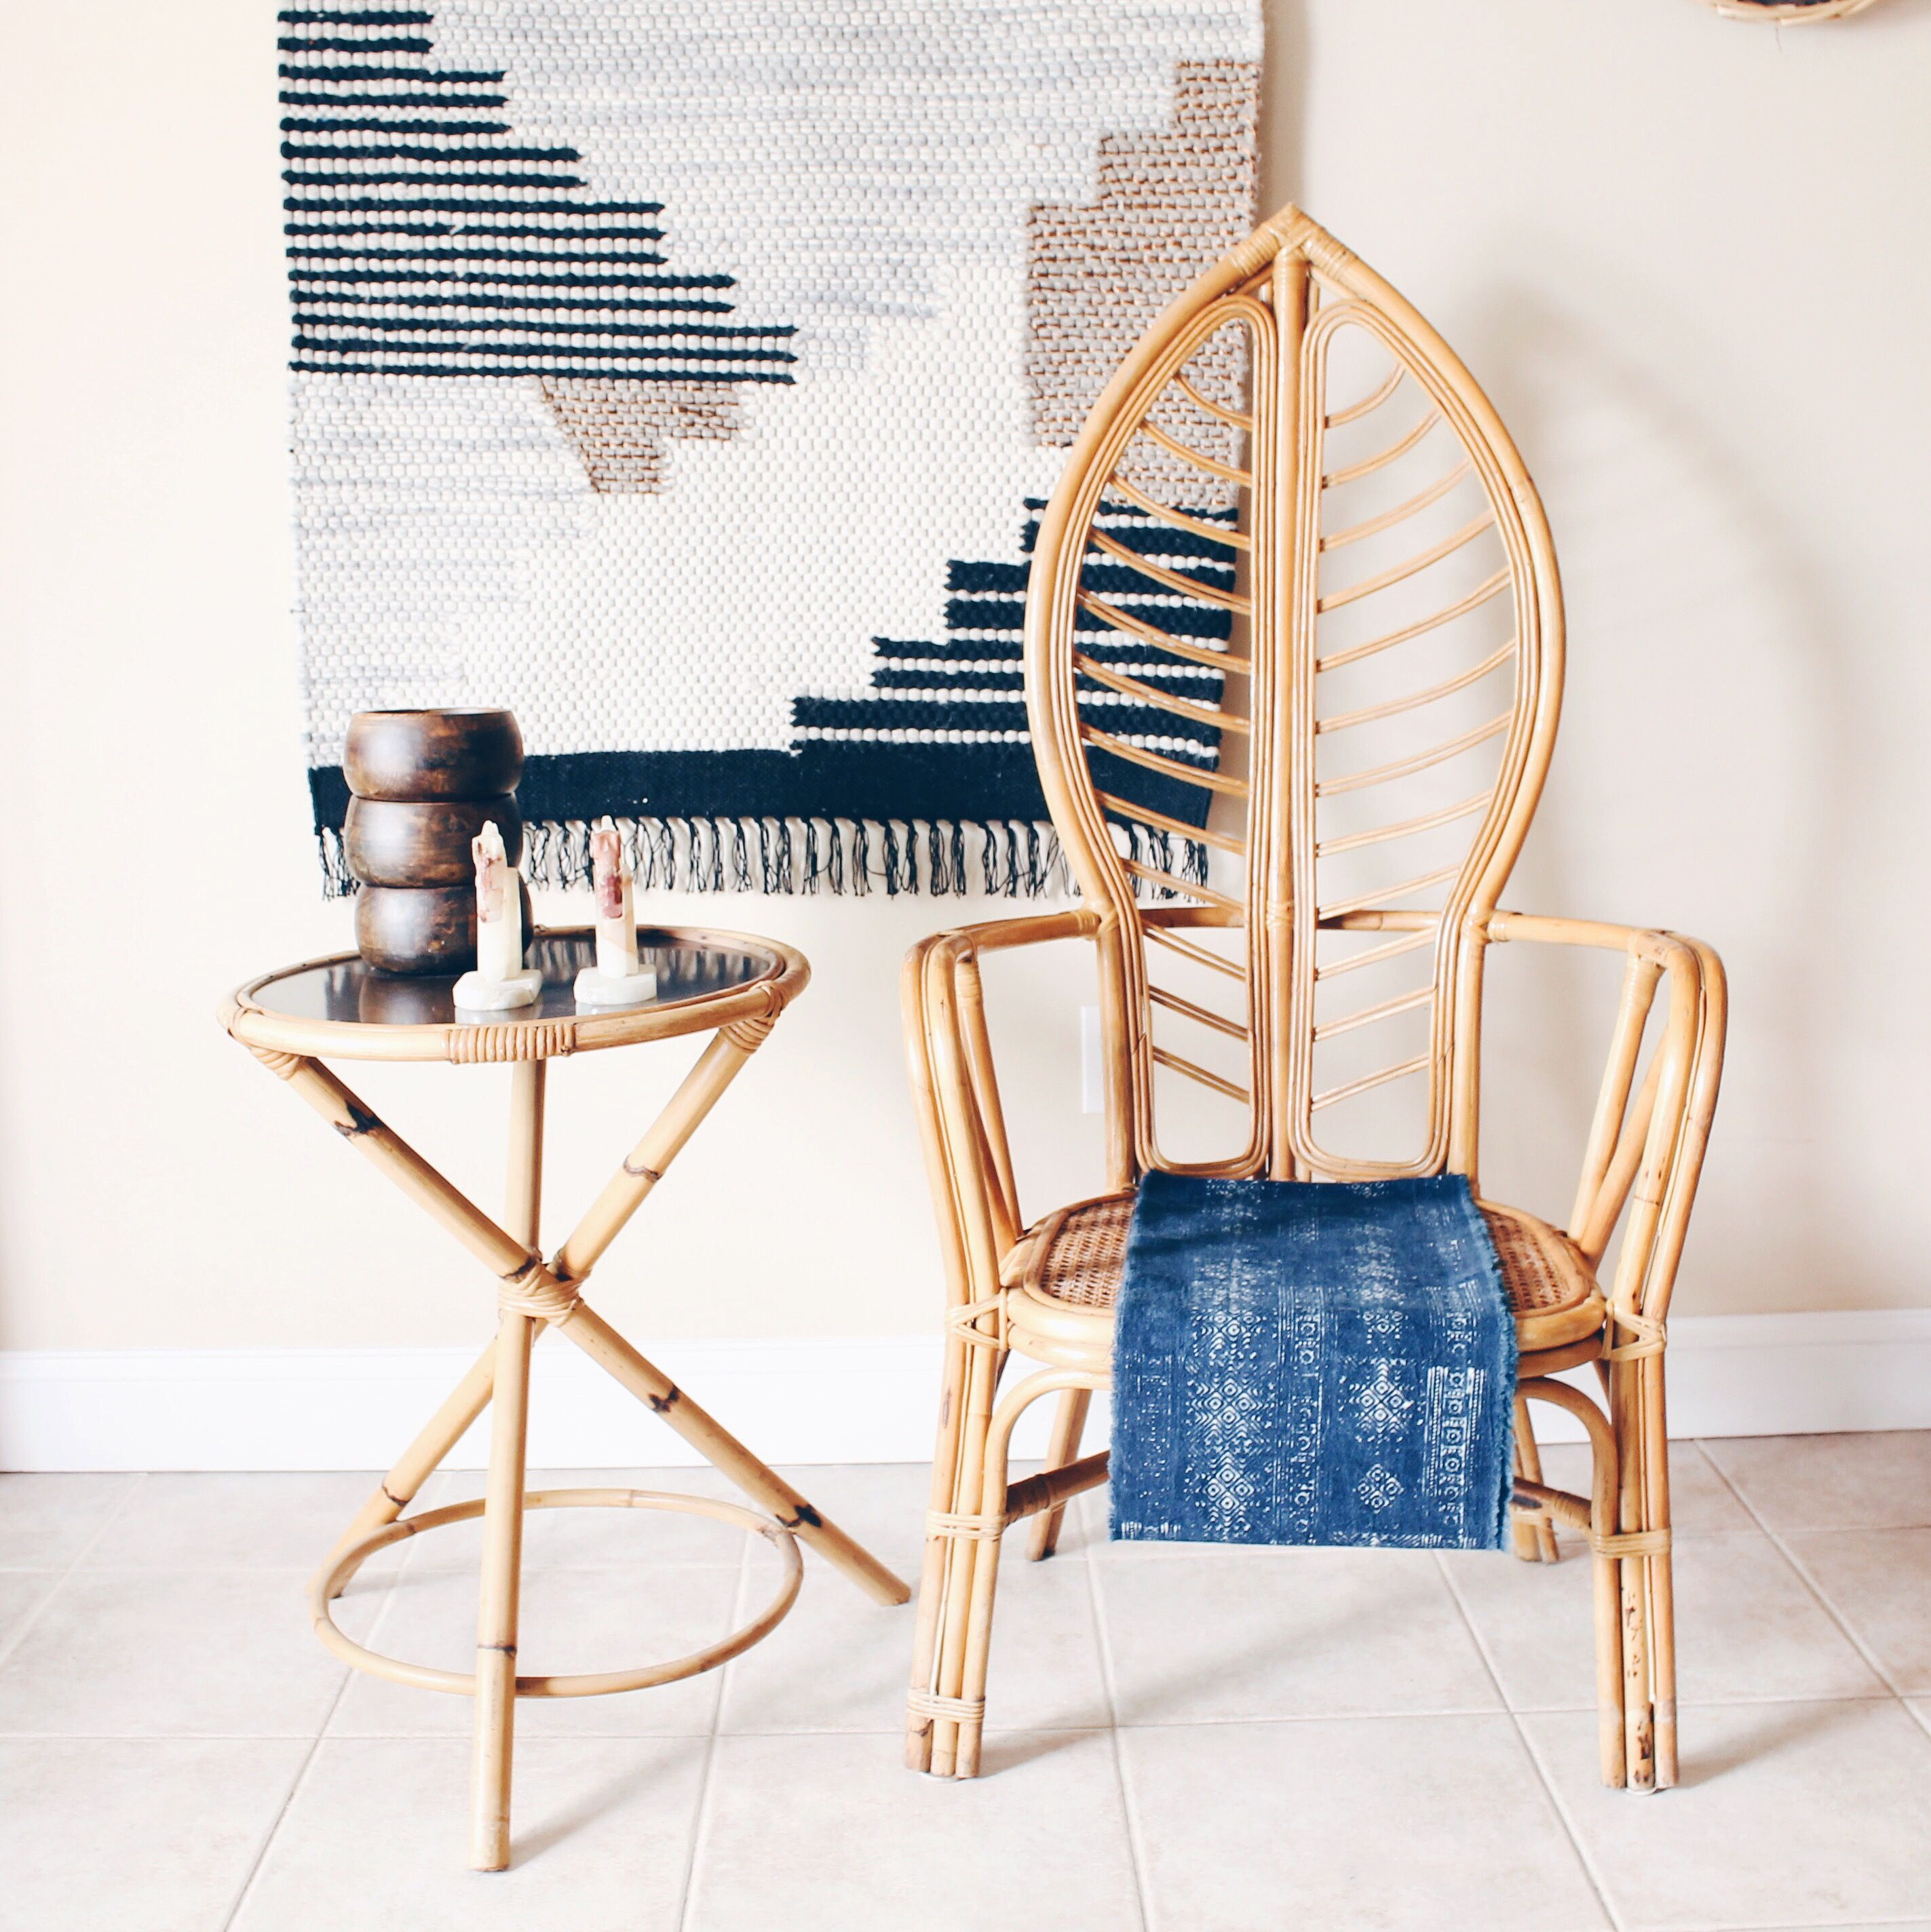 Vintage rattan rocking chair - Rattan Leaf Shaped Throne Chairs With Caned Seat High Back Chair Vintage Rattan Arm